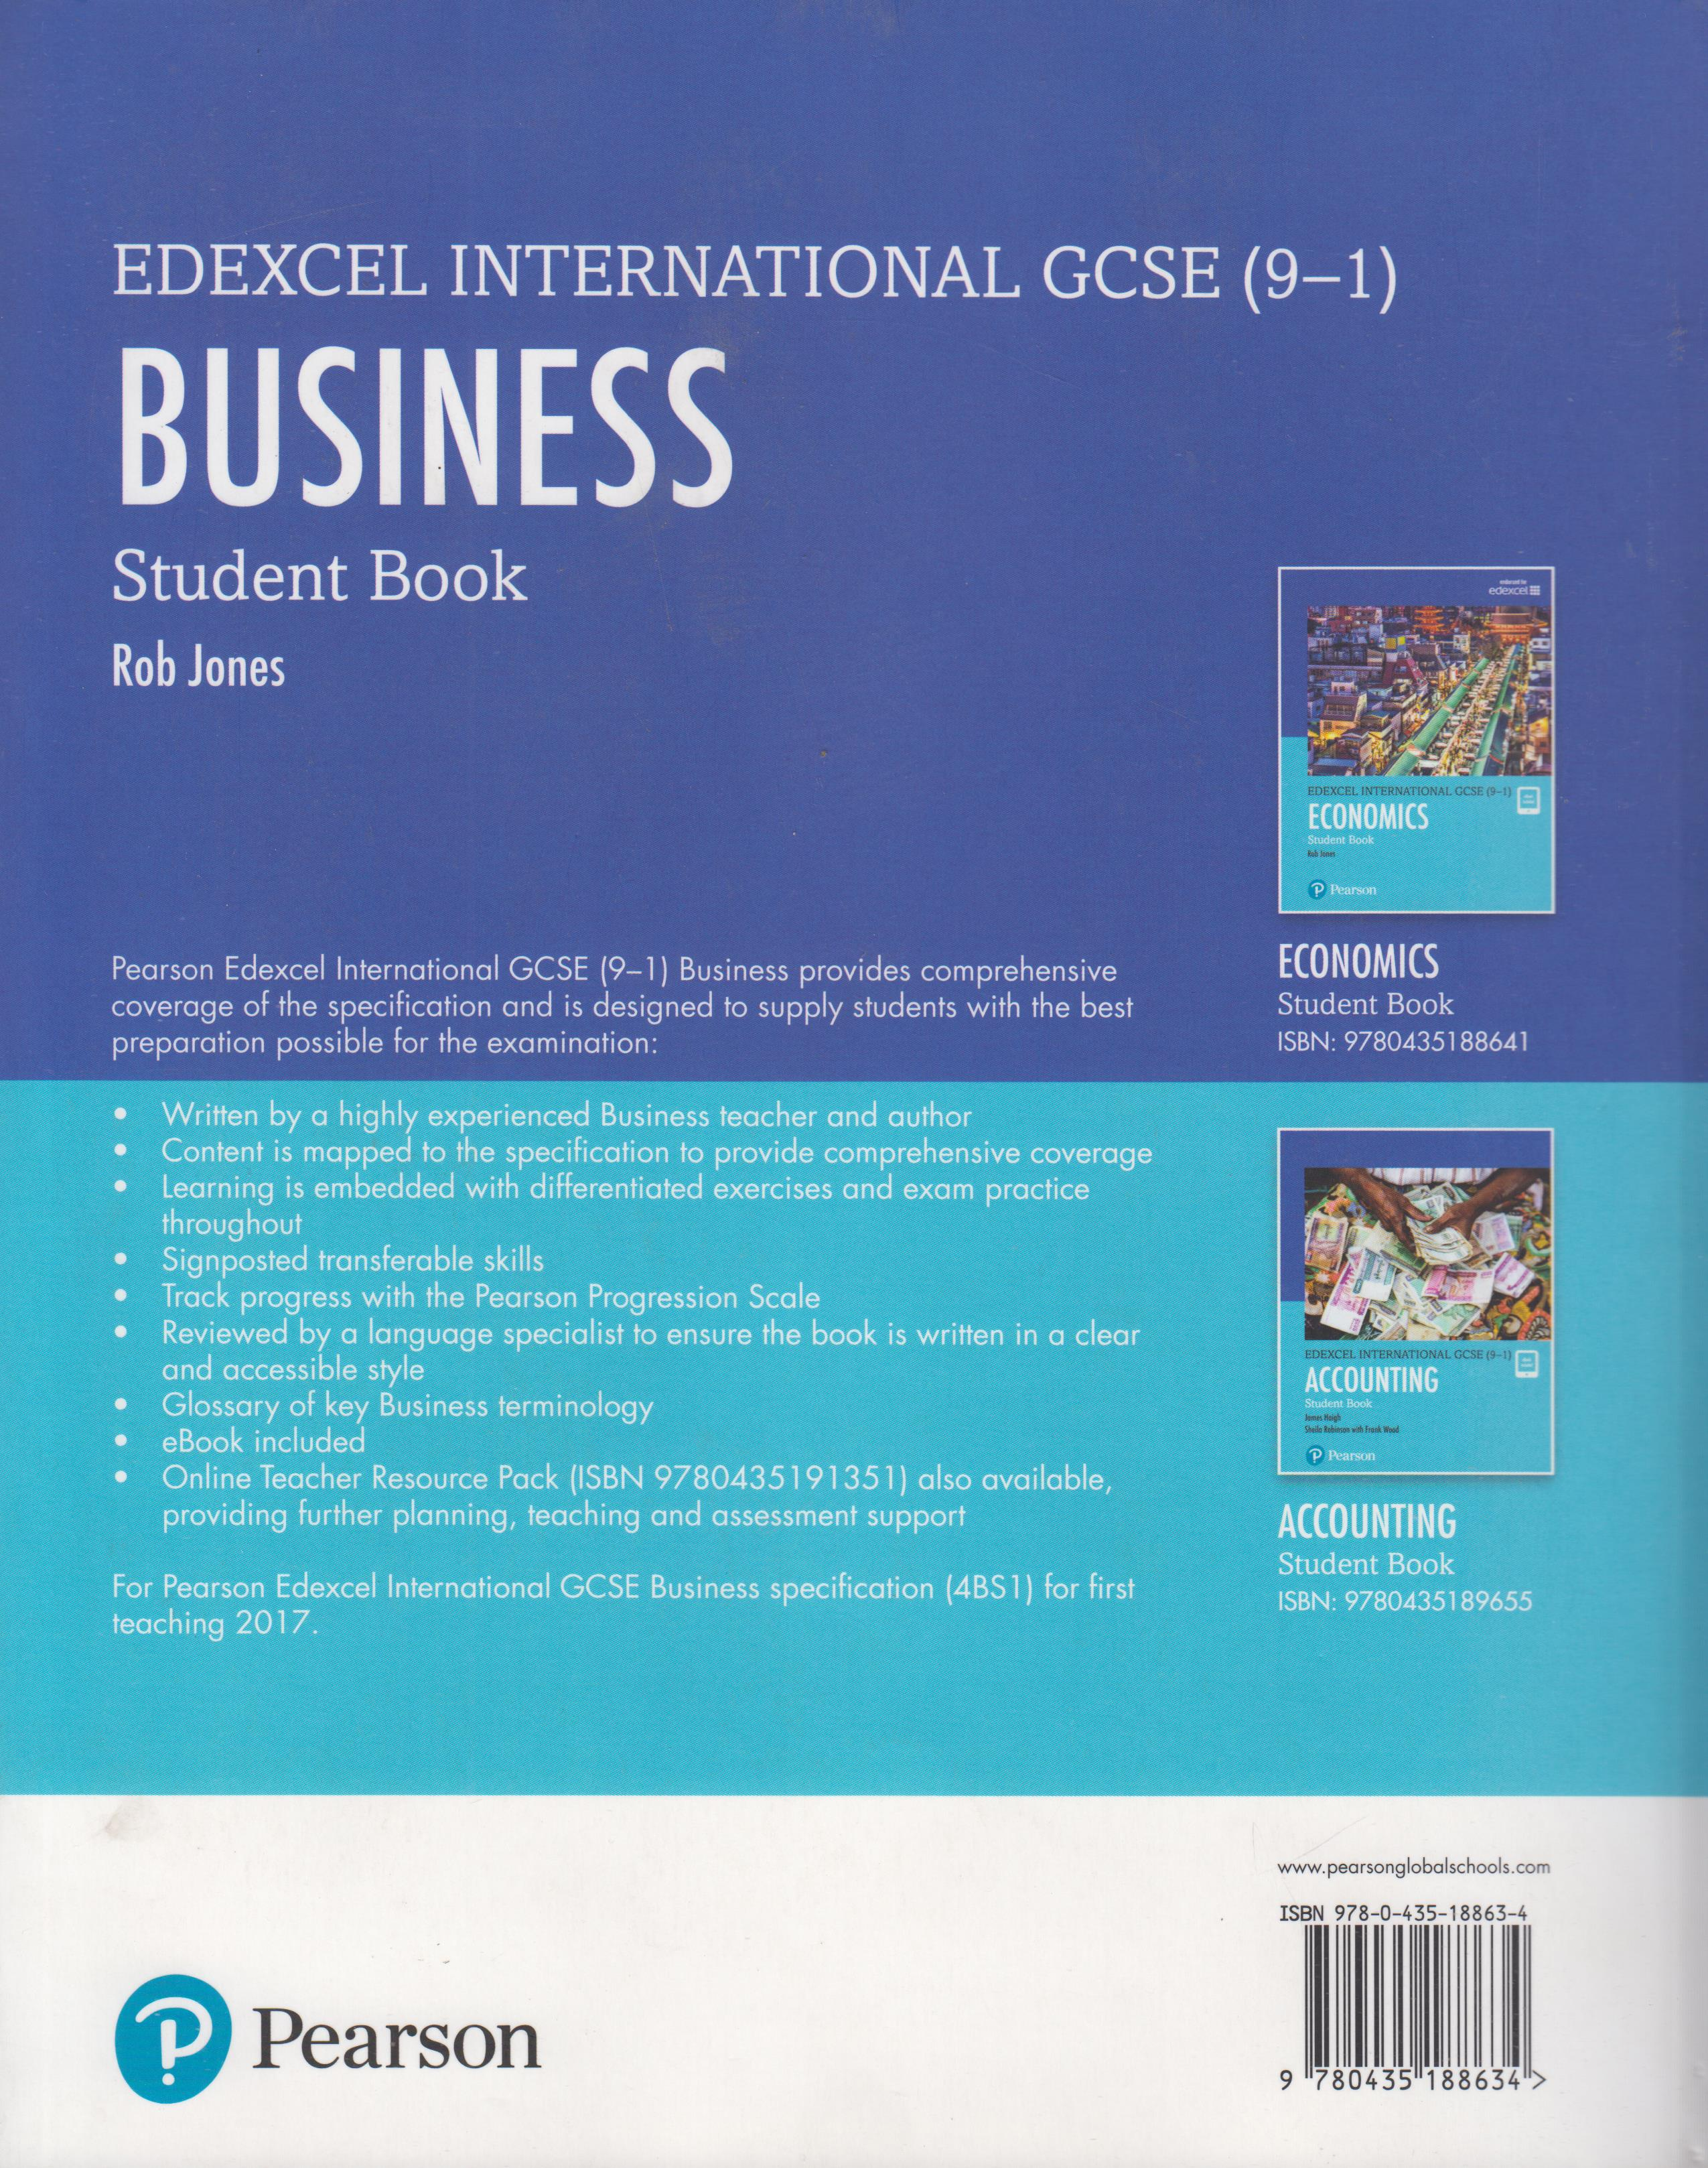 Edexcel International GCSE (9-1) Business Student Book | Books, Stationery,  Computers, Laptops and more  Buy online and get free delivery on orders